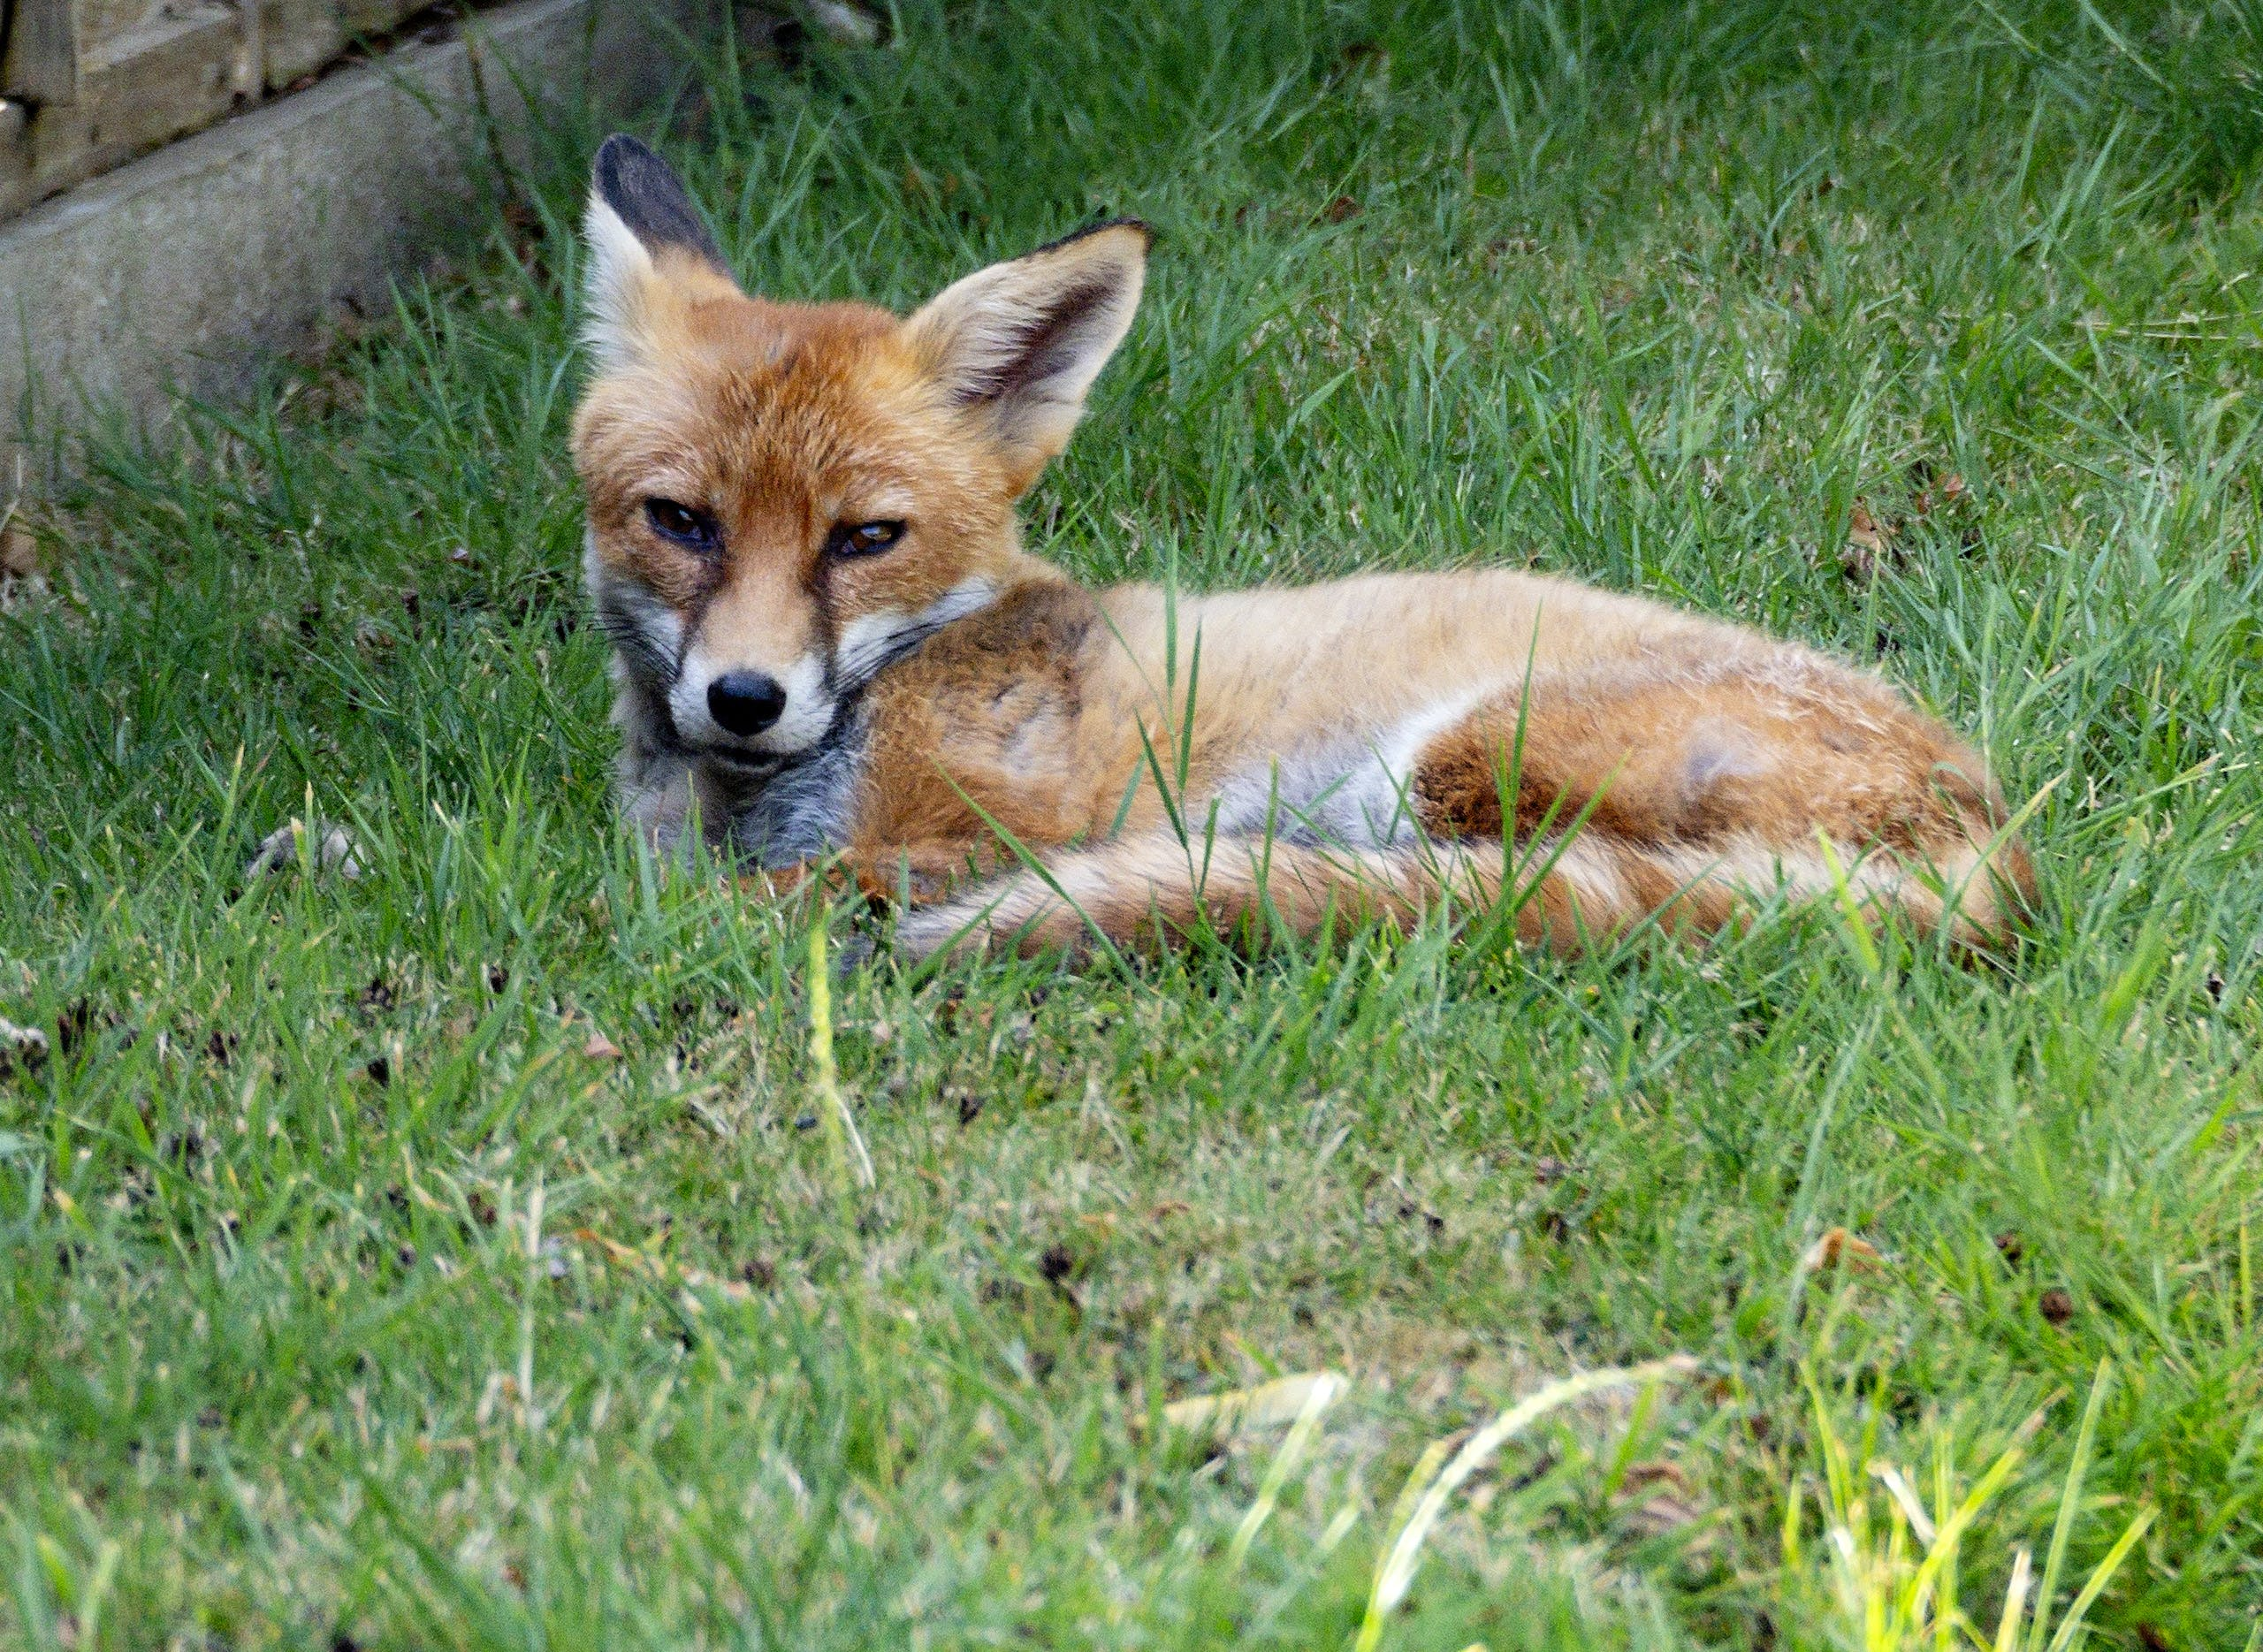 Free stock photo of fox, garden, grass, urban fox